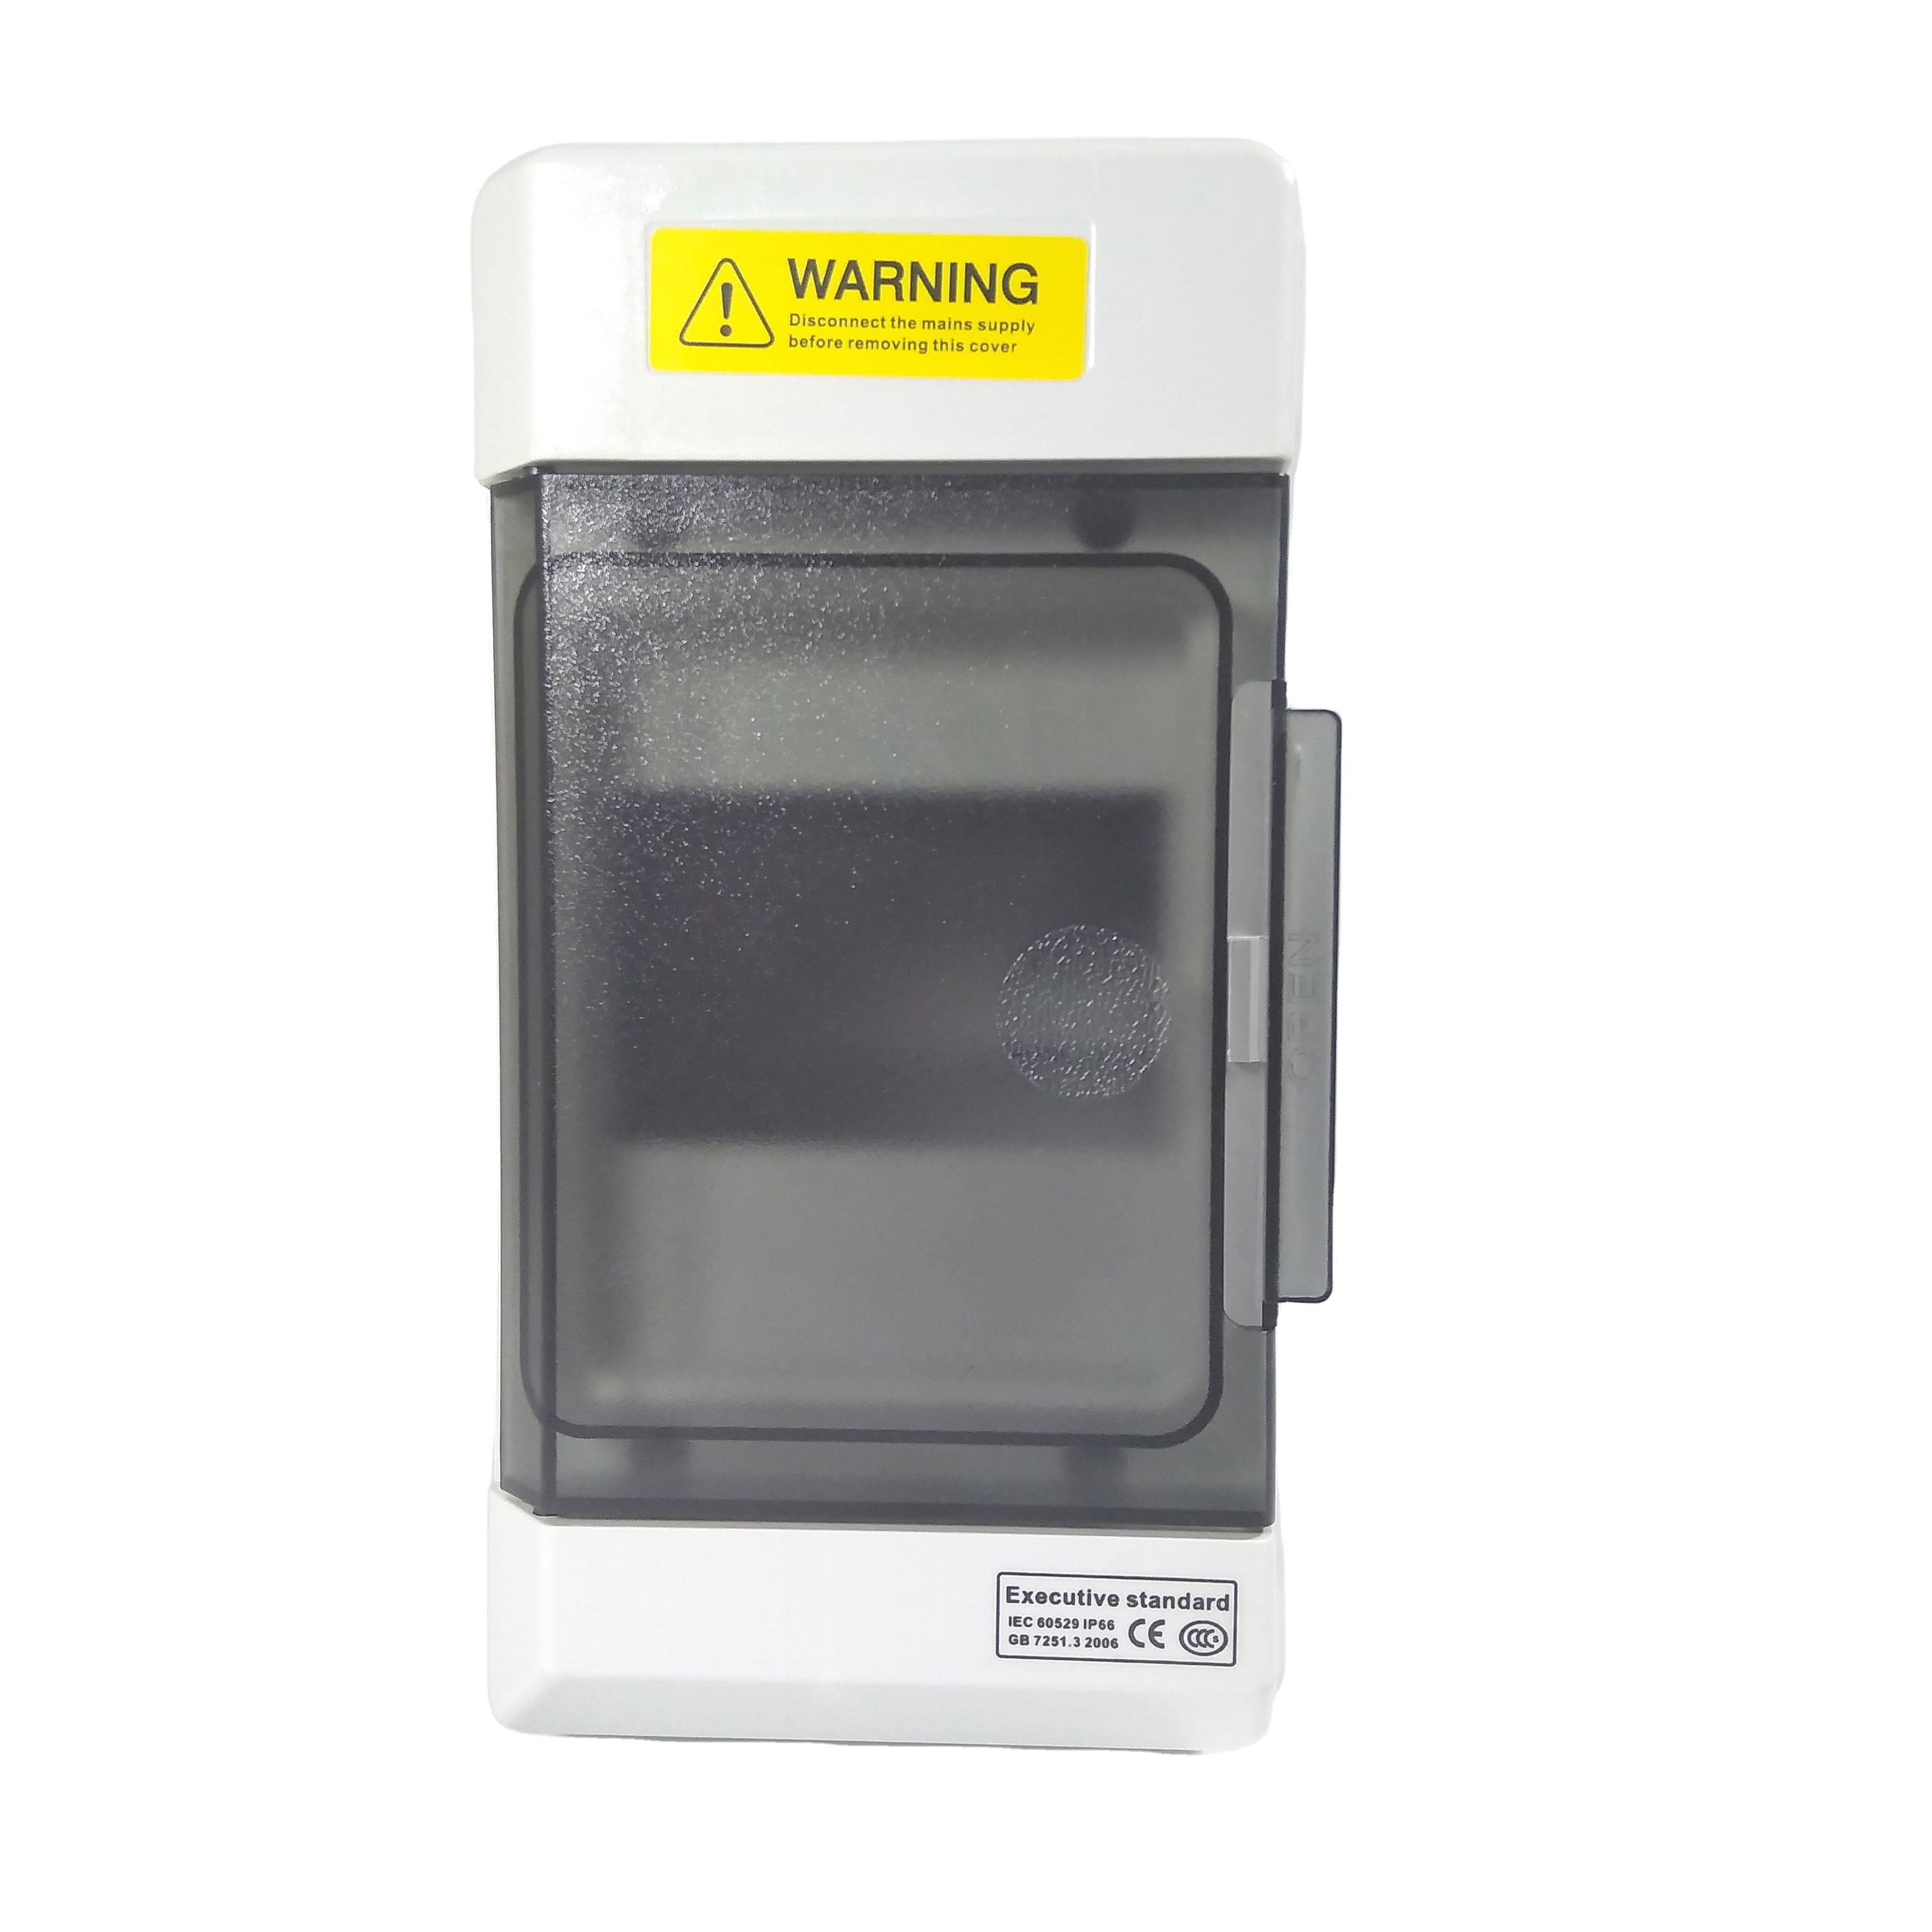 JOHNN ABS Plastic MCB Electrical Distribution Box IP65 Power Distribution Equipment